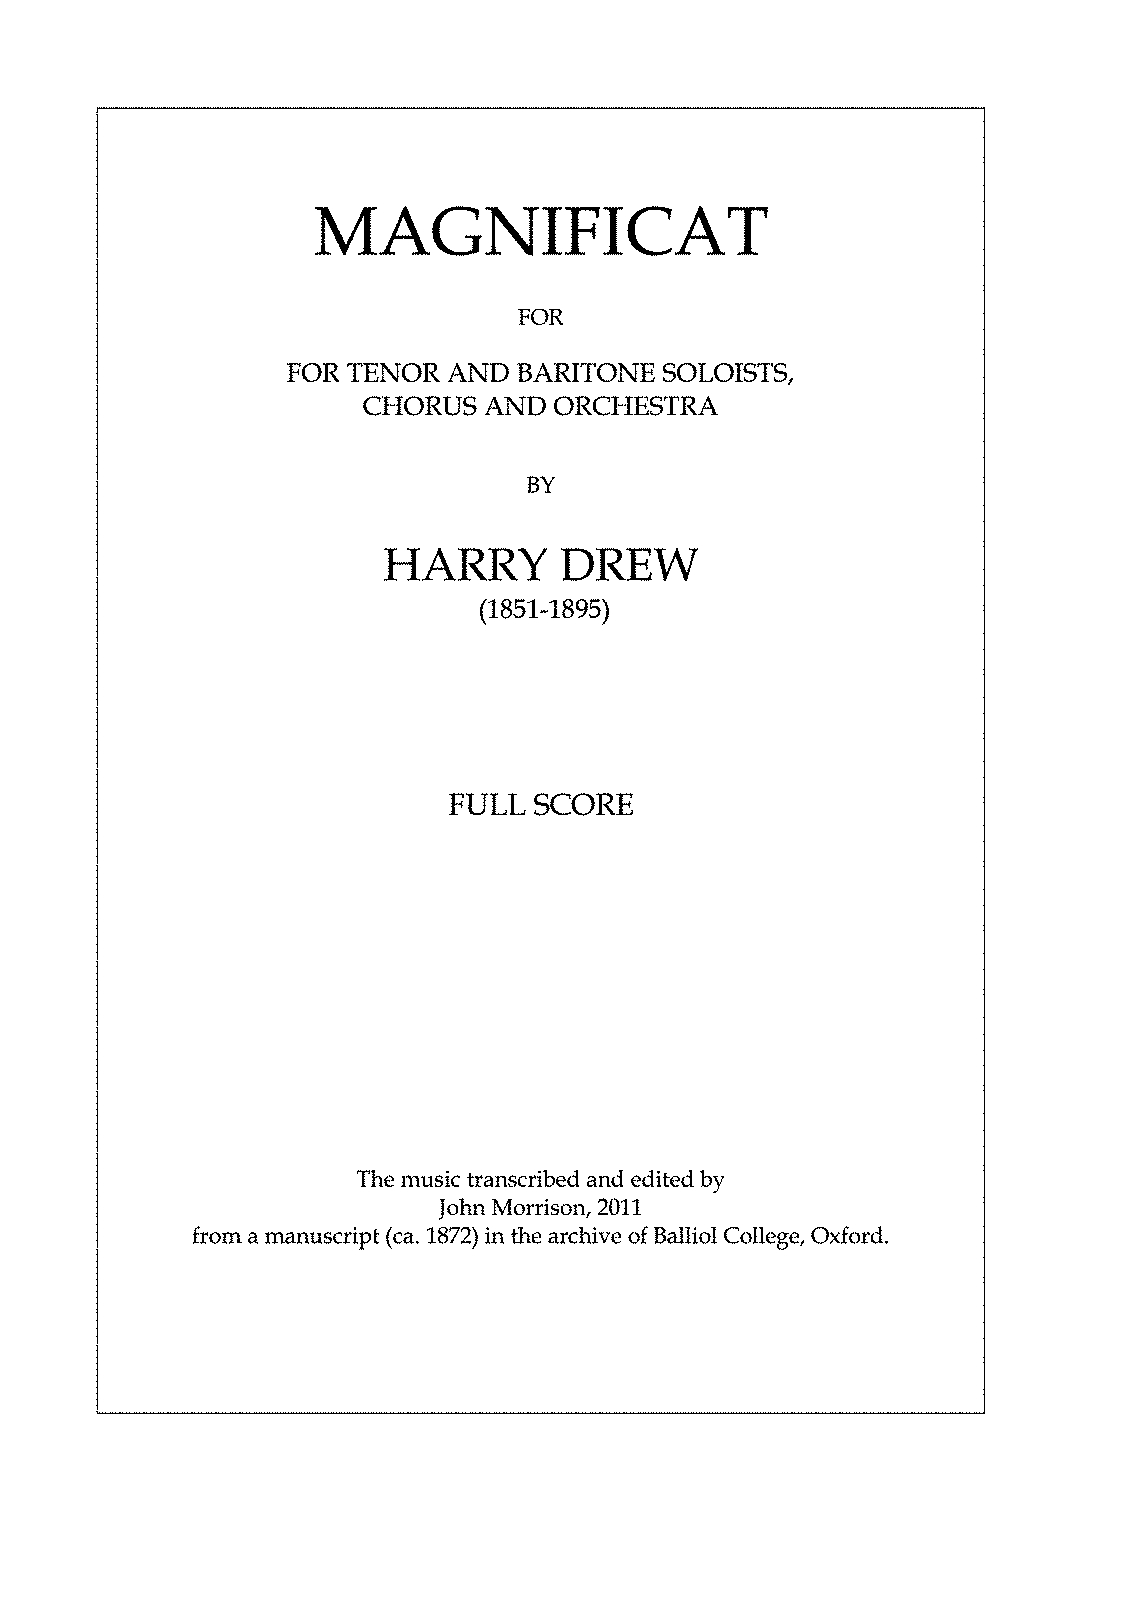 PMLP421032-Harry Drew Magnificat description and full score.pdf